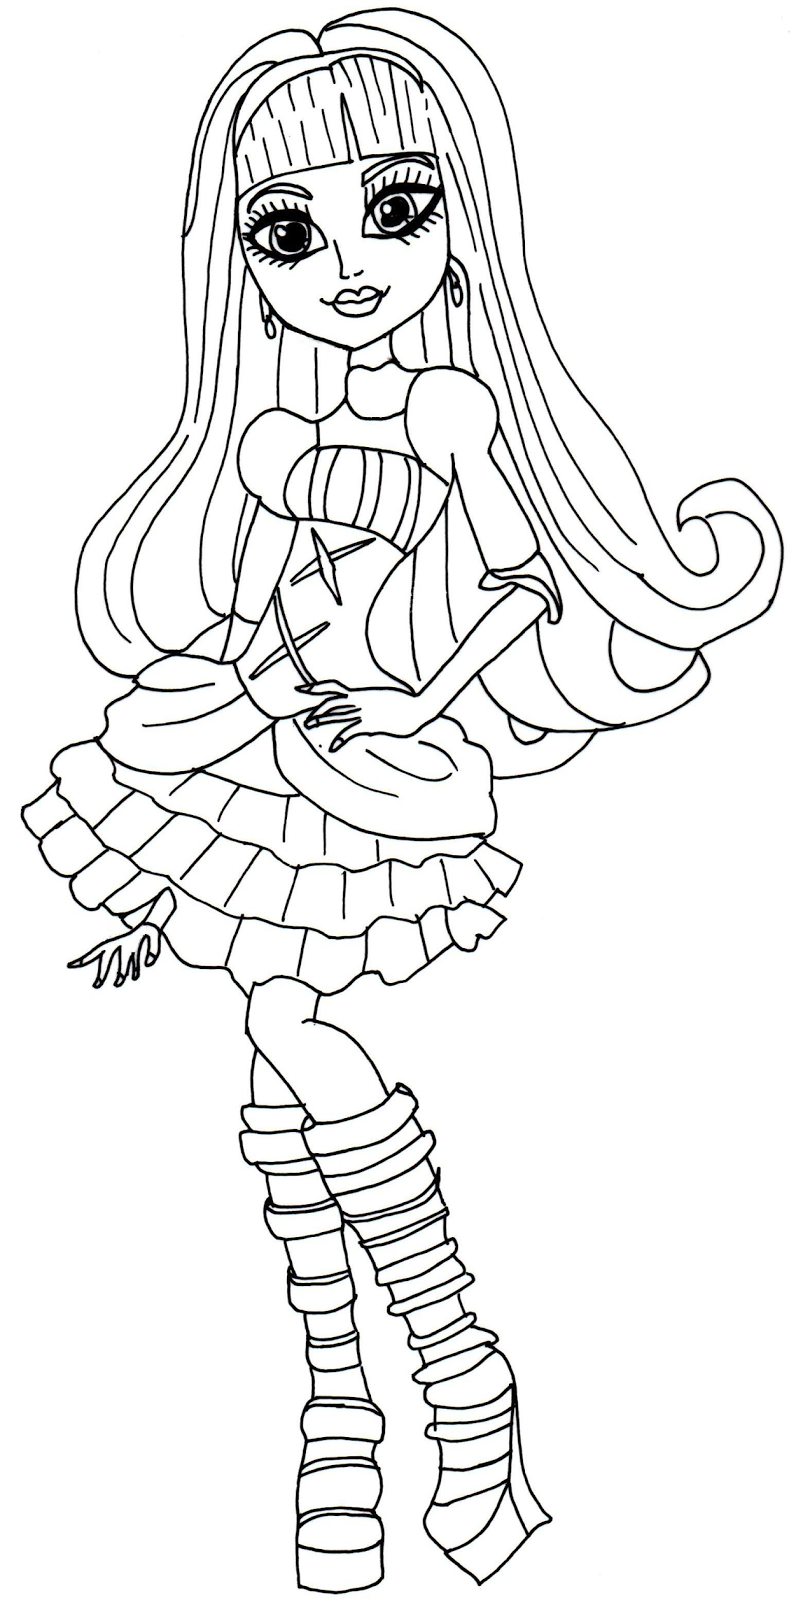 Monster High Coloring Pages 360coloringpages Monster High Coloring Pages 360coloringpages If Your C Cartoon Coloring Pages Bear Coloring Pages Coloring Pages